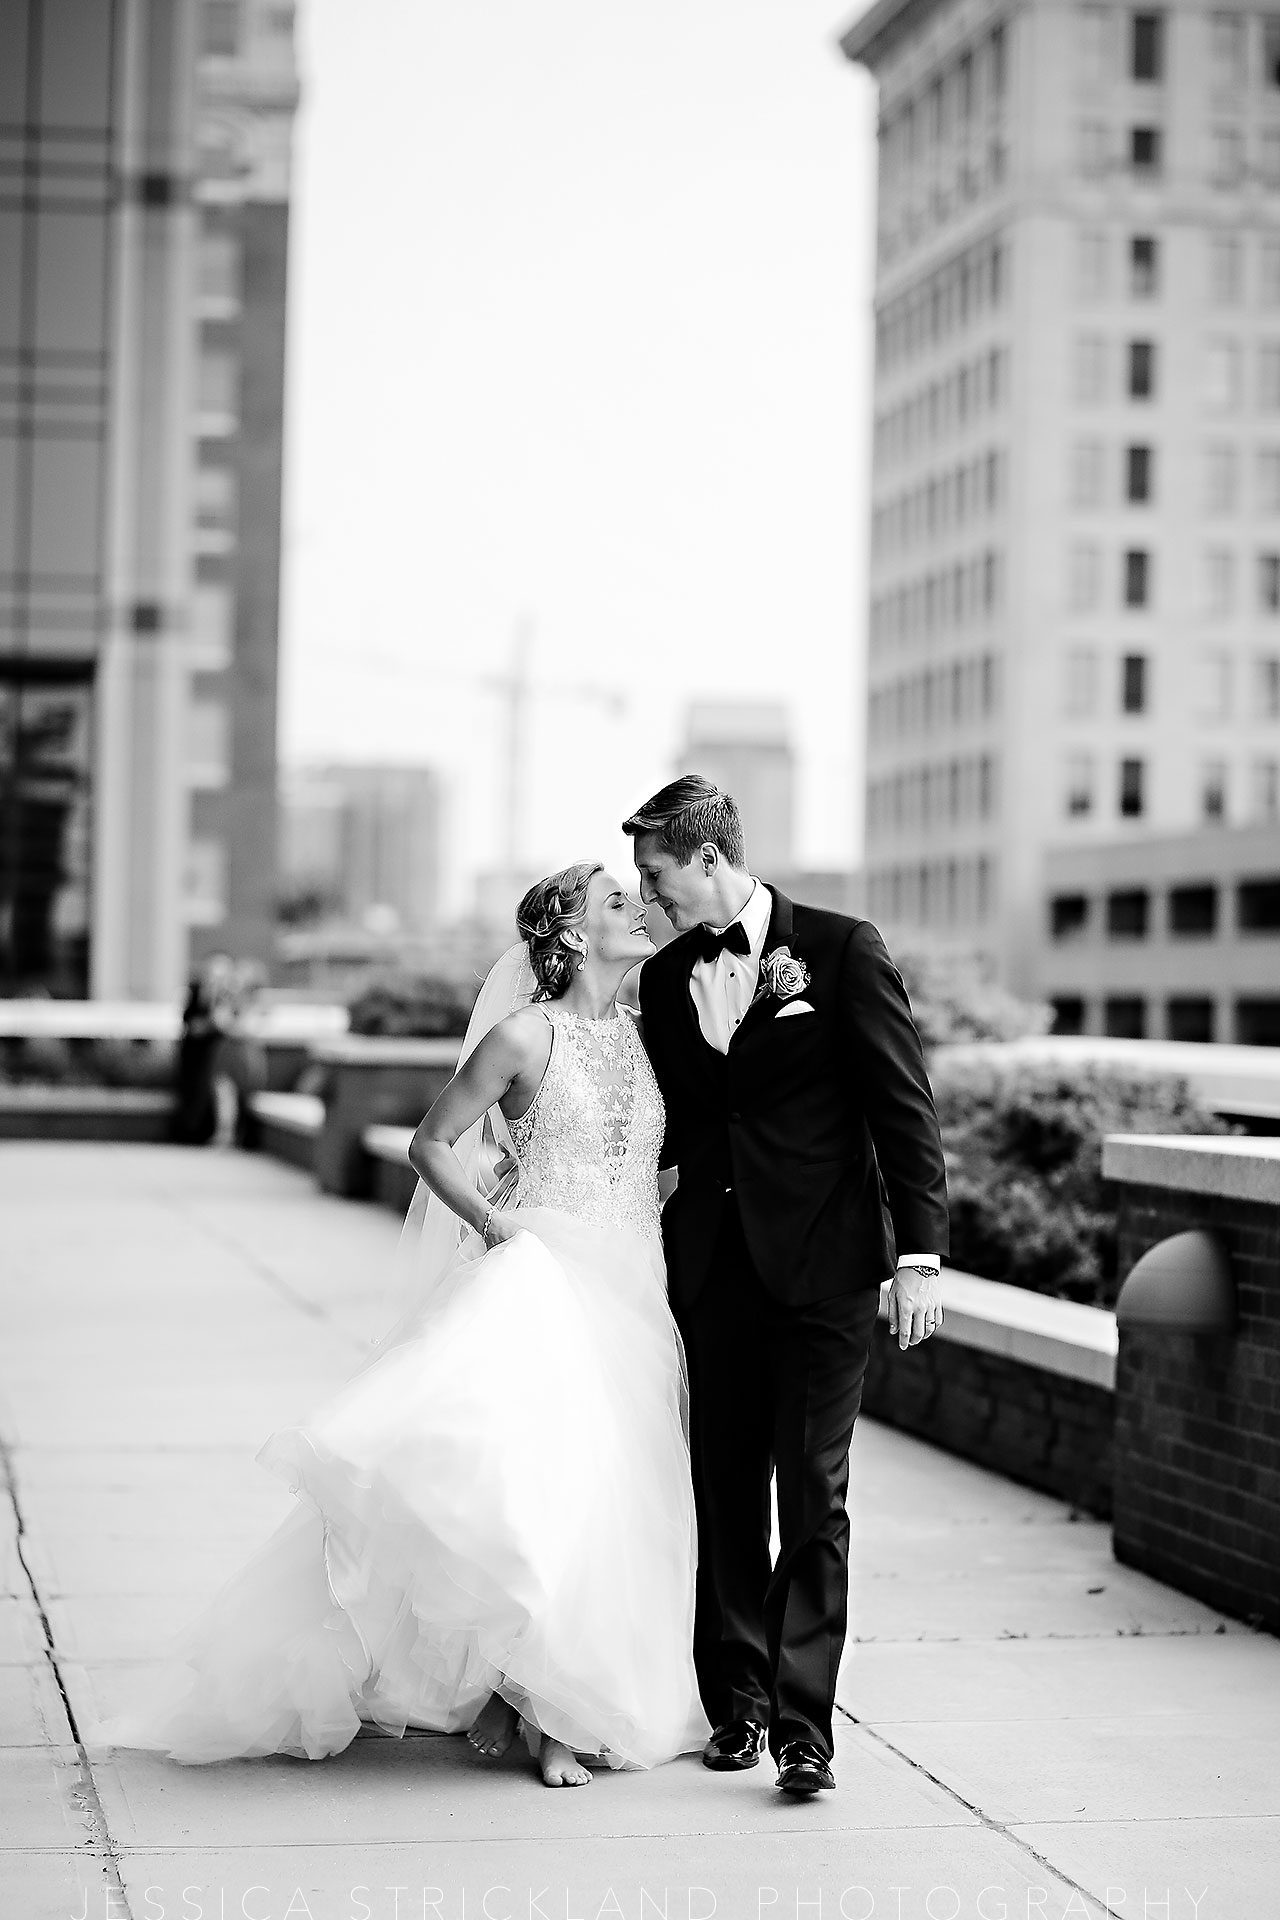 Serra Alex Regions Tower Indianapolis Wedding 266 watermarked